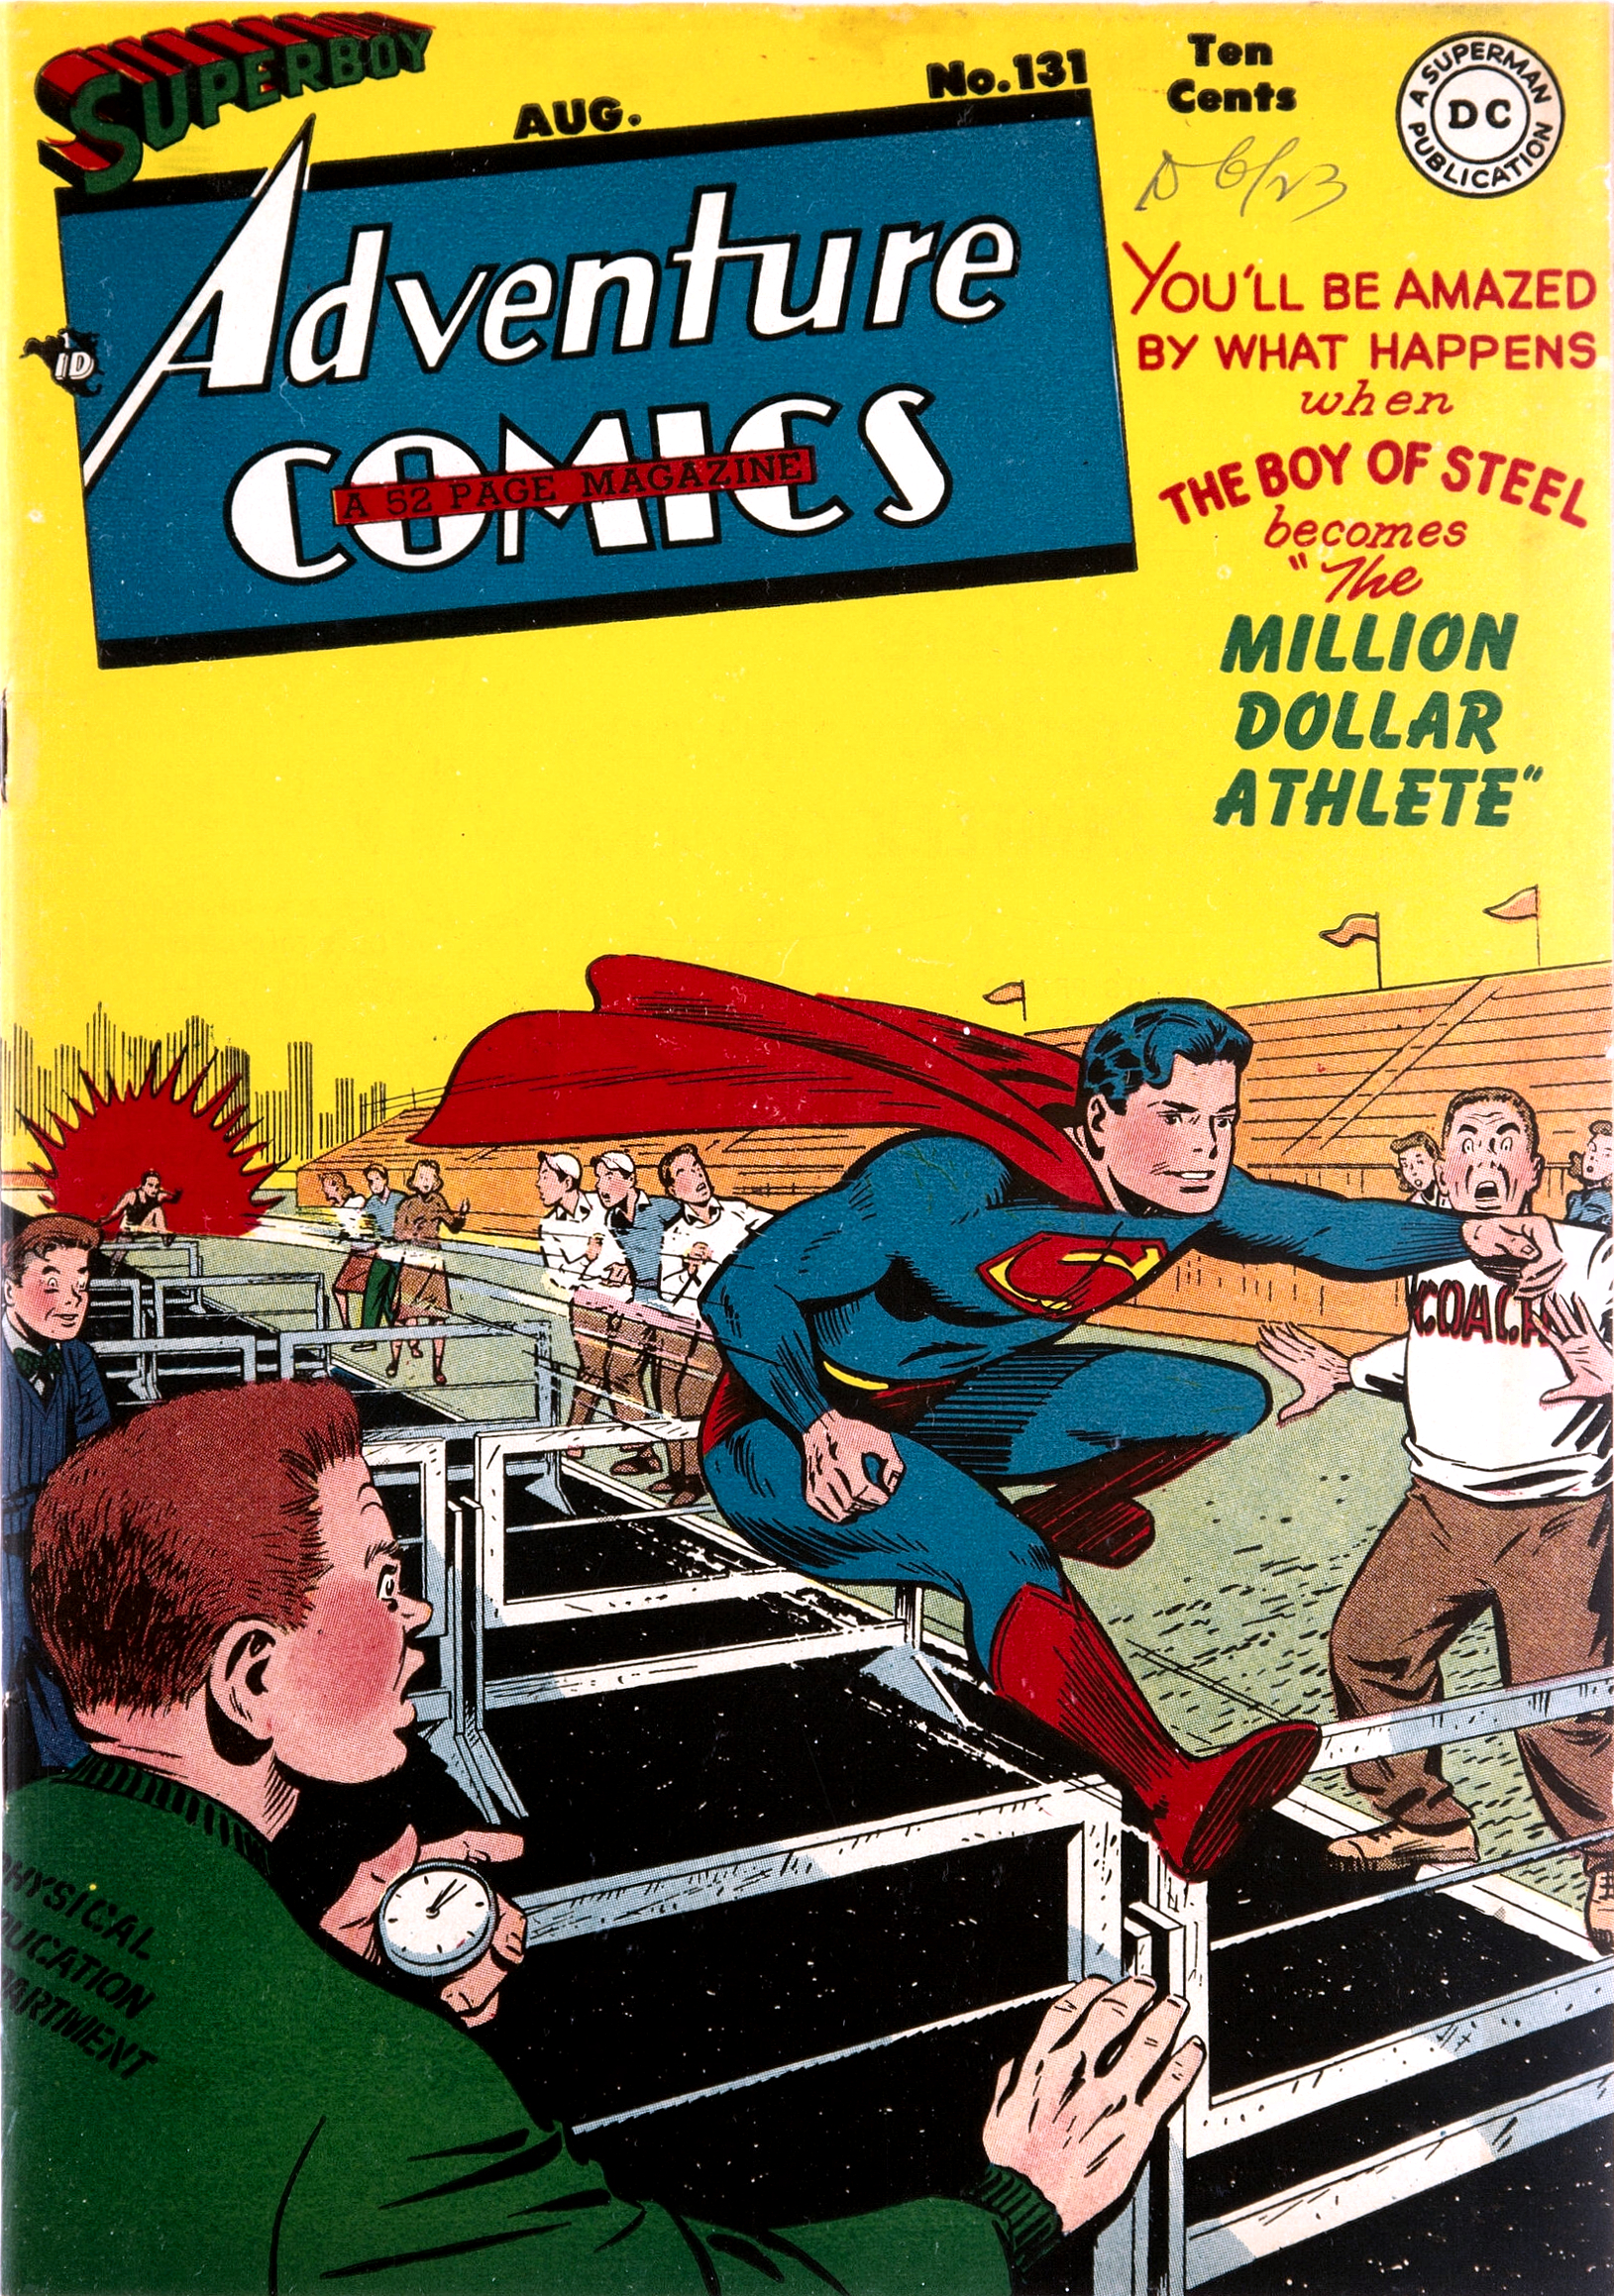 Adventure Comics Vol 1 131